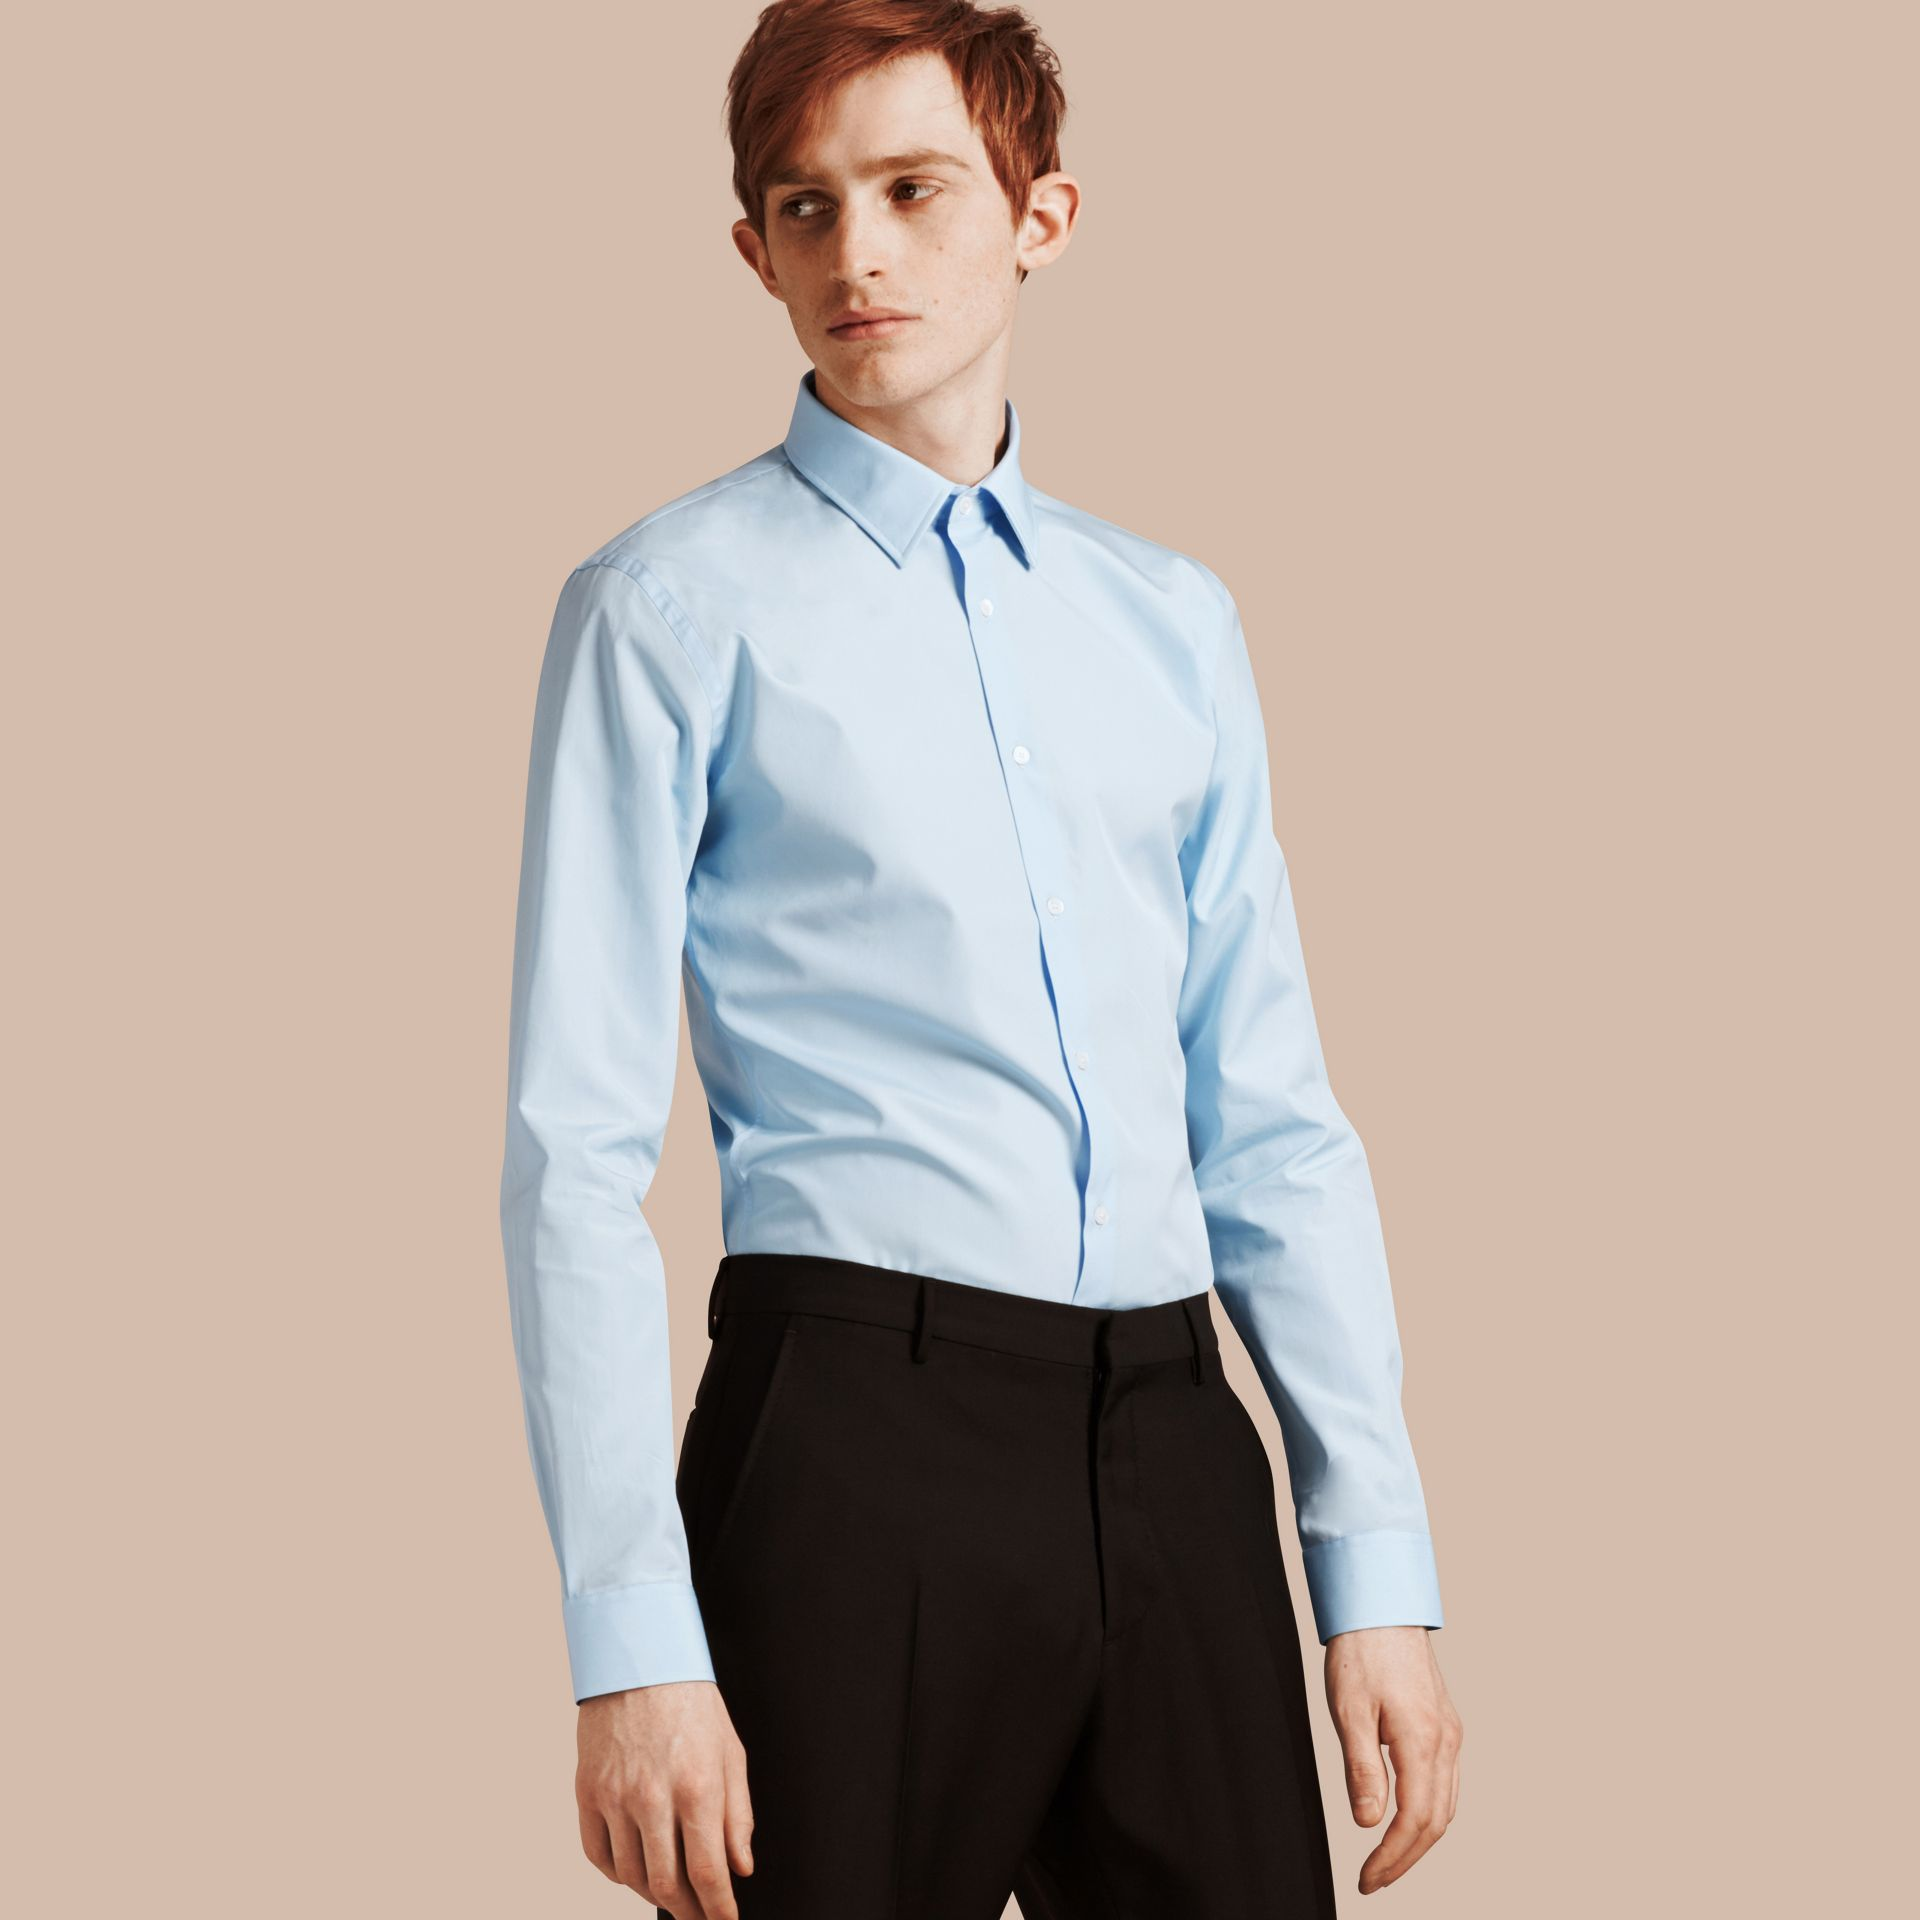 City blue Slim Fit Cotton Poplin Shirt City Blue - gallery image 1